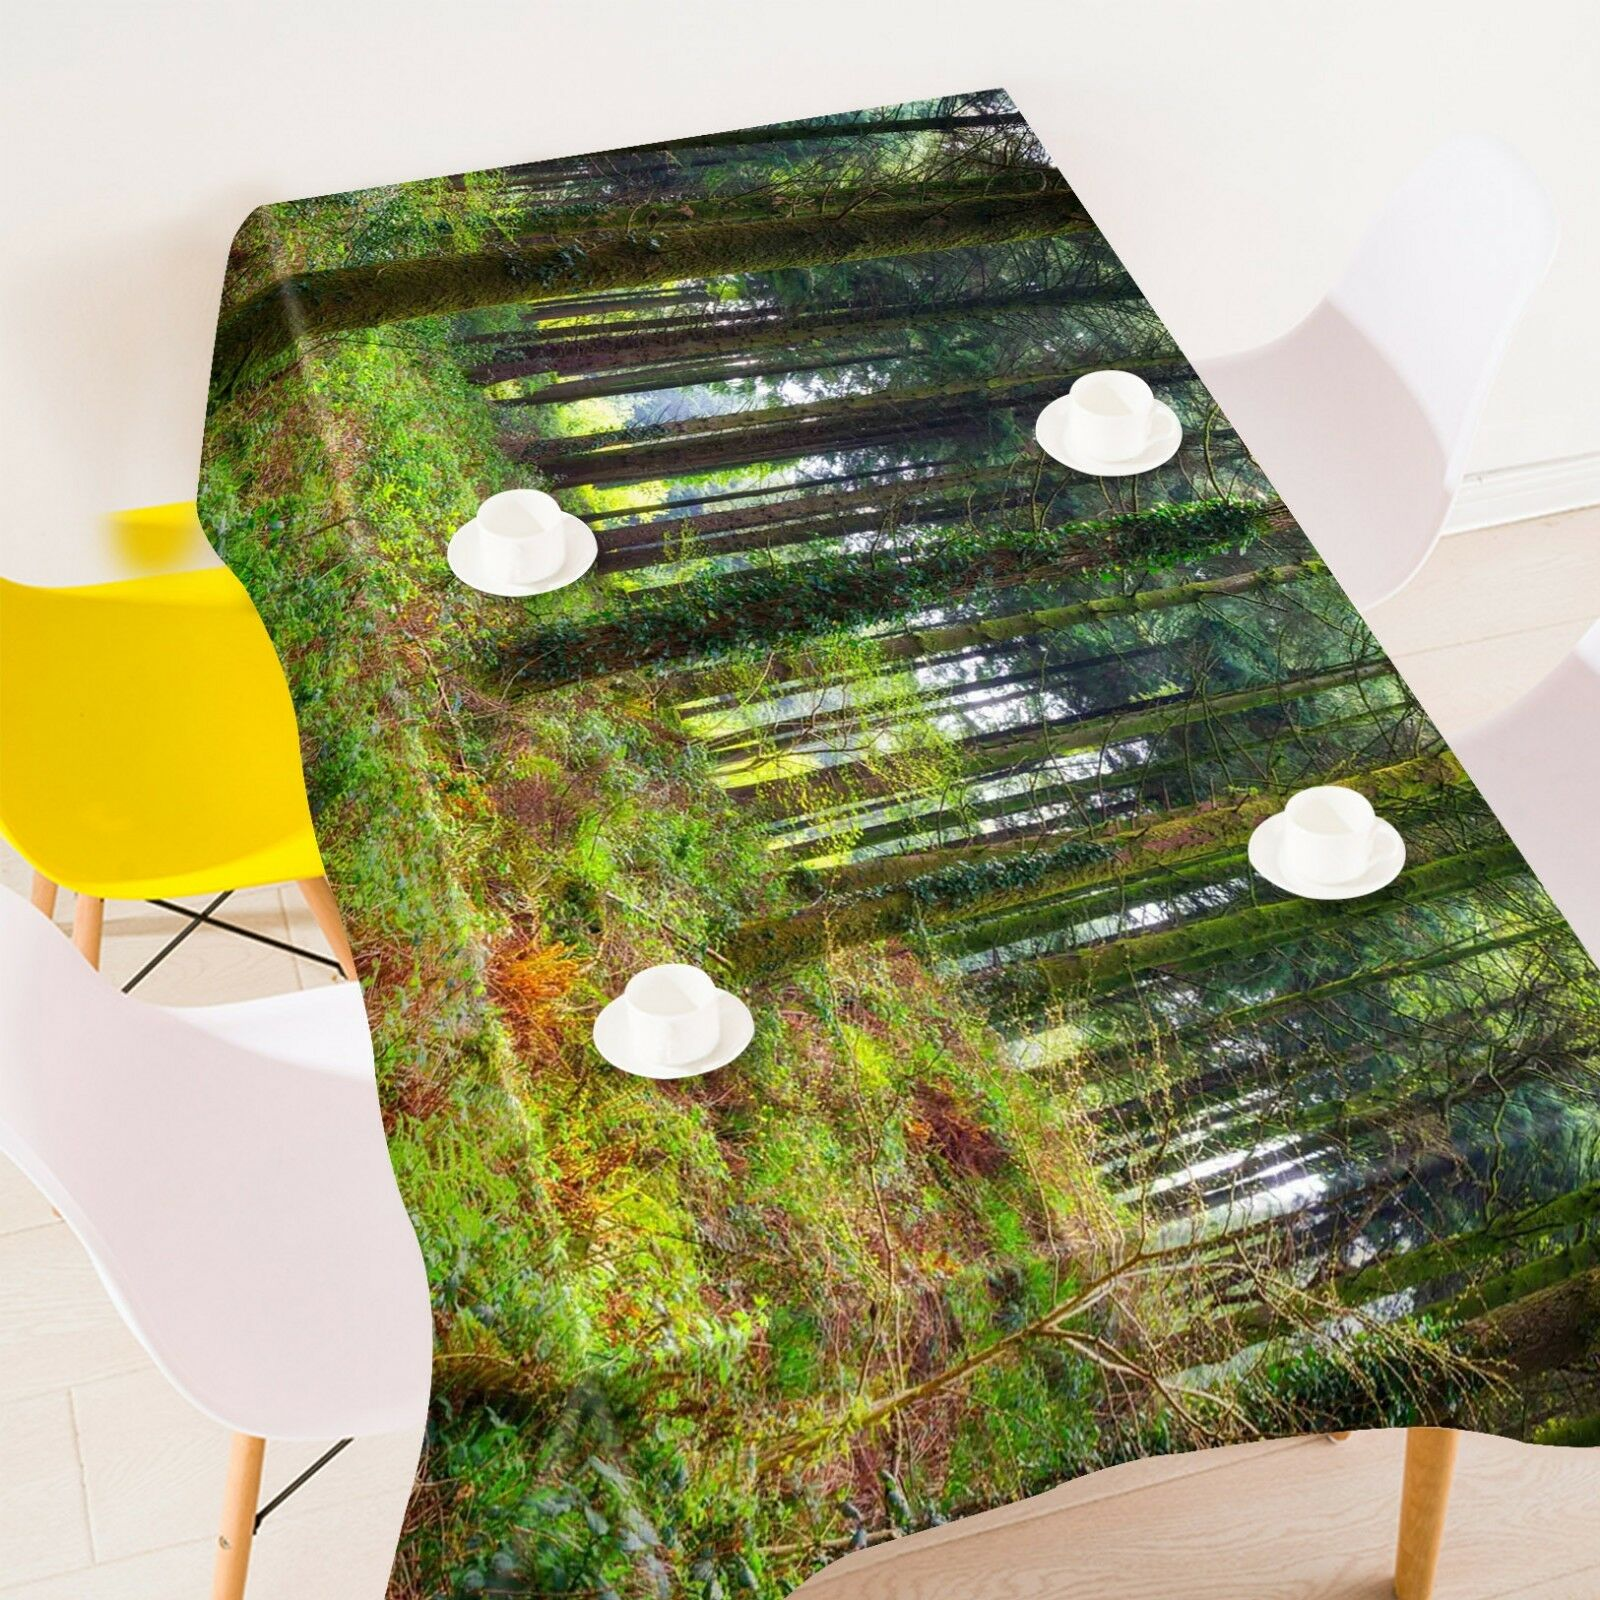 3D vert Grass Tree 0 Tablecloth Table Cover Cloth Birthday Party Event AJ Jenny